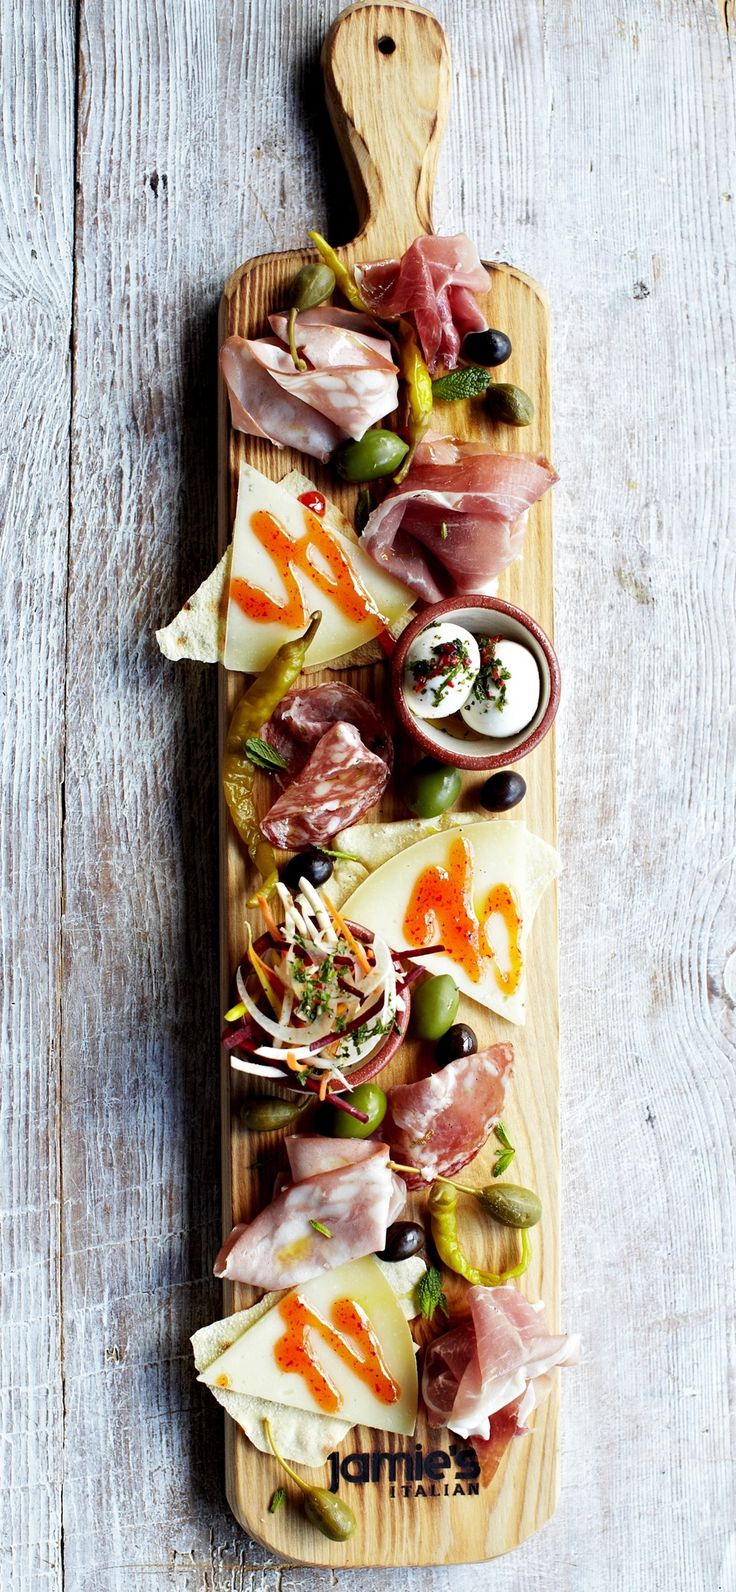 The famous planks at Jamie's Italian. Served with your favorite cured meats, Italian cheeses, and pickled vegetables.